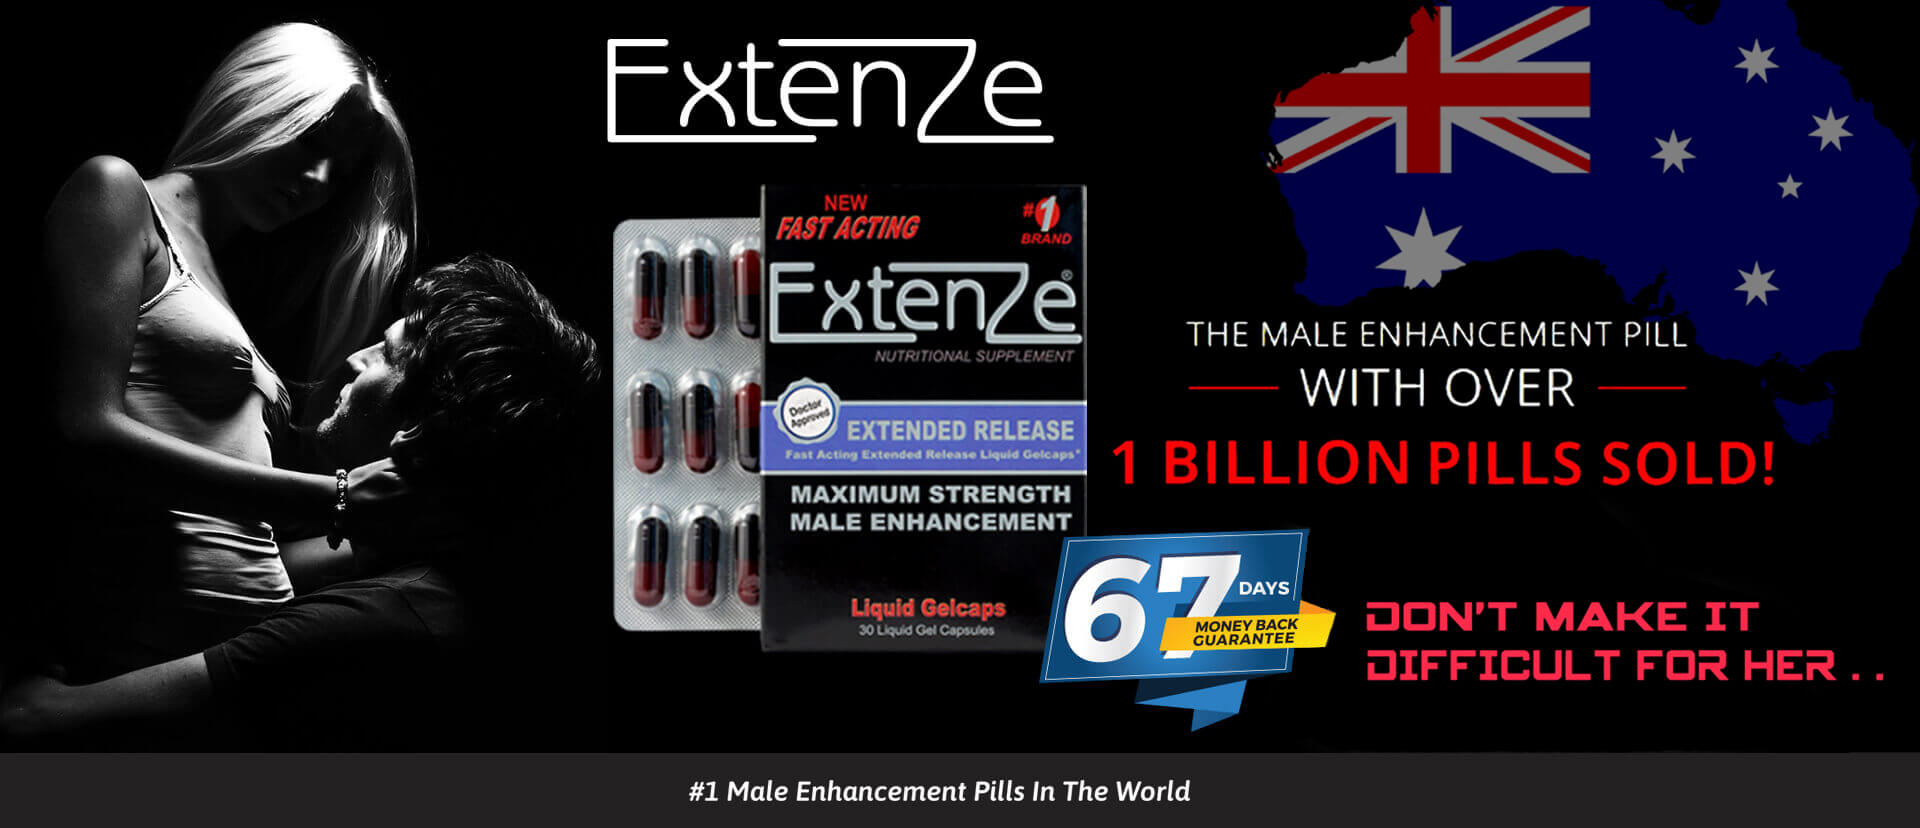 Extenze Ht Does It Work